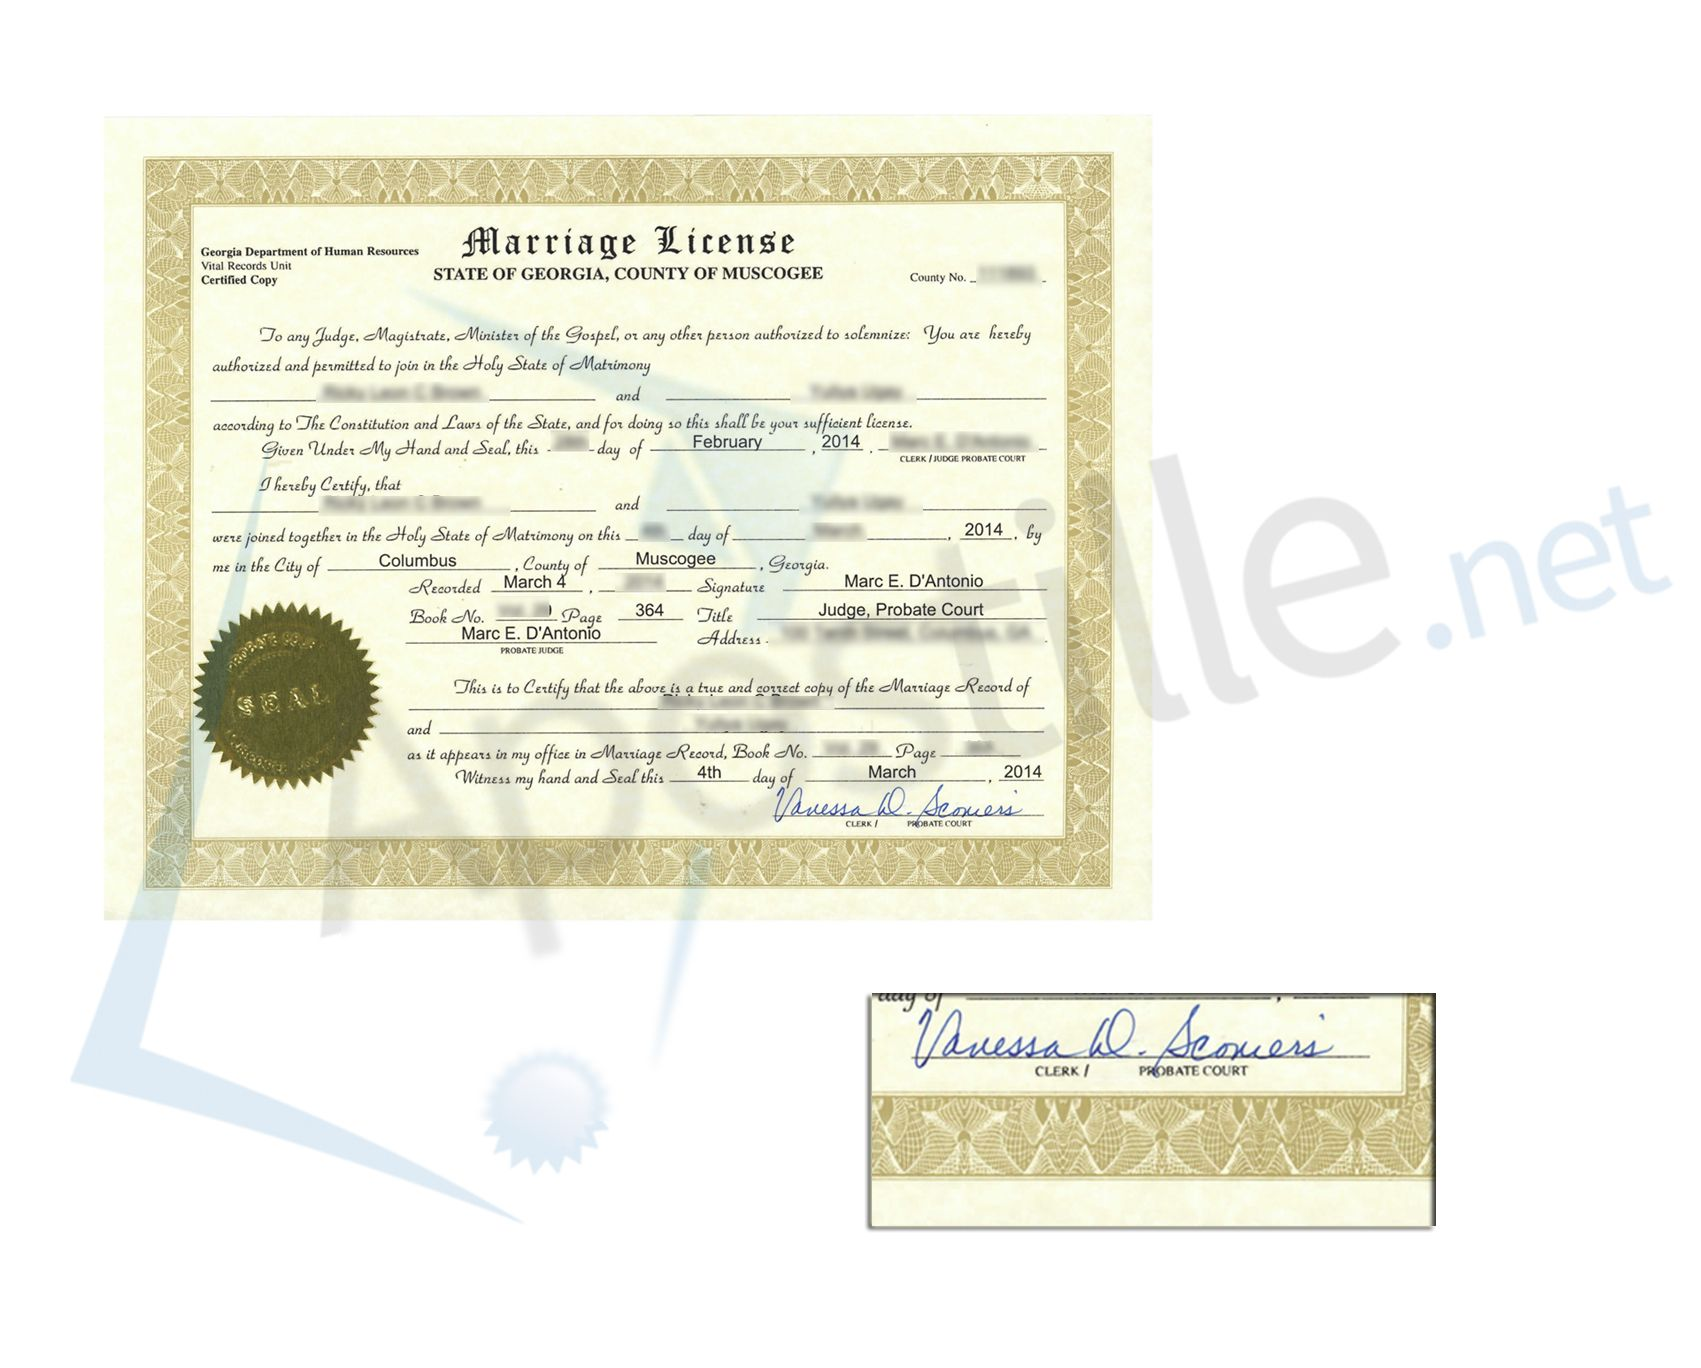 County Of Muscogee Georgia Marriage License Signed By The County